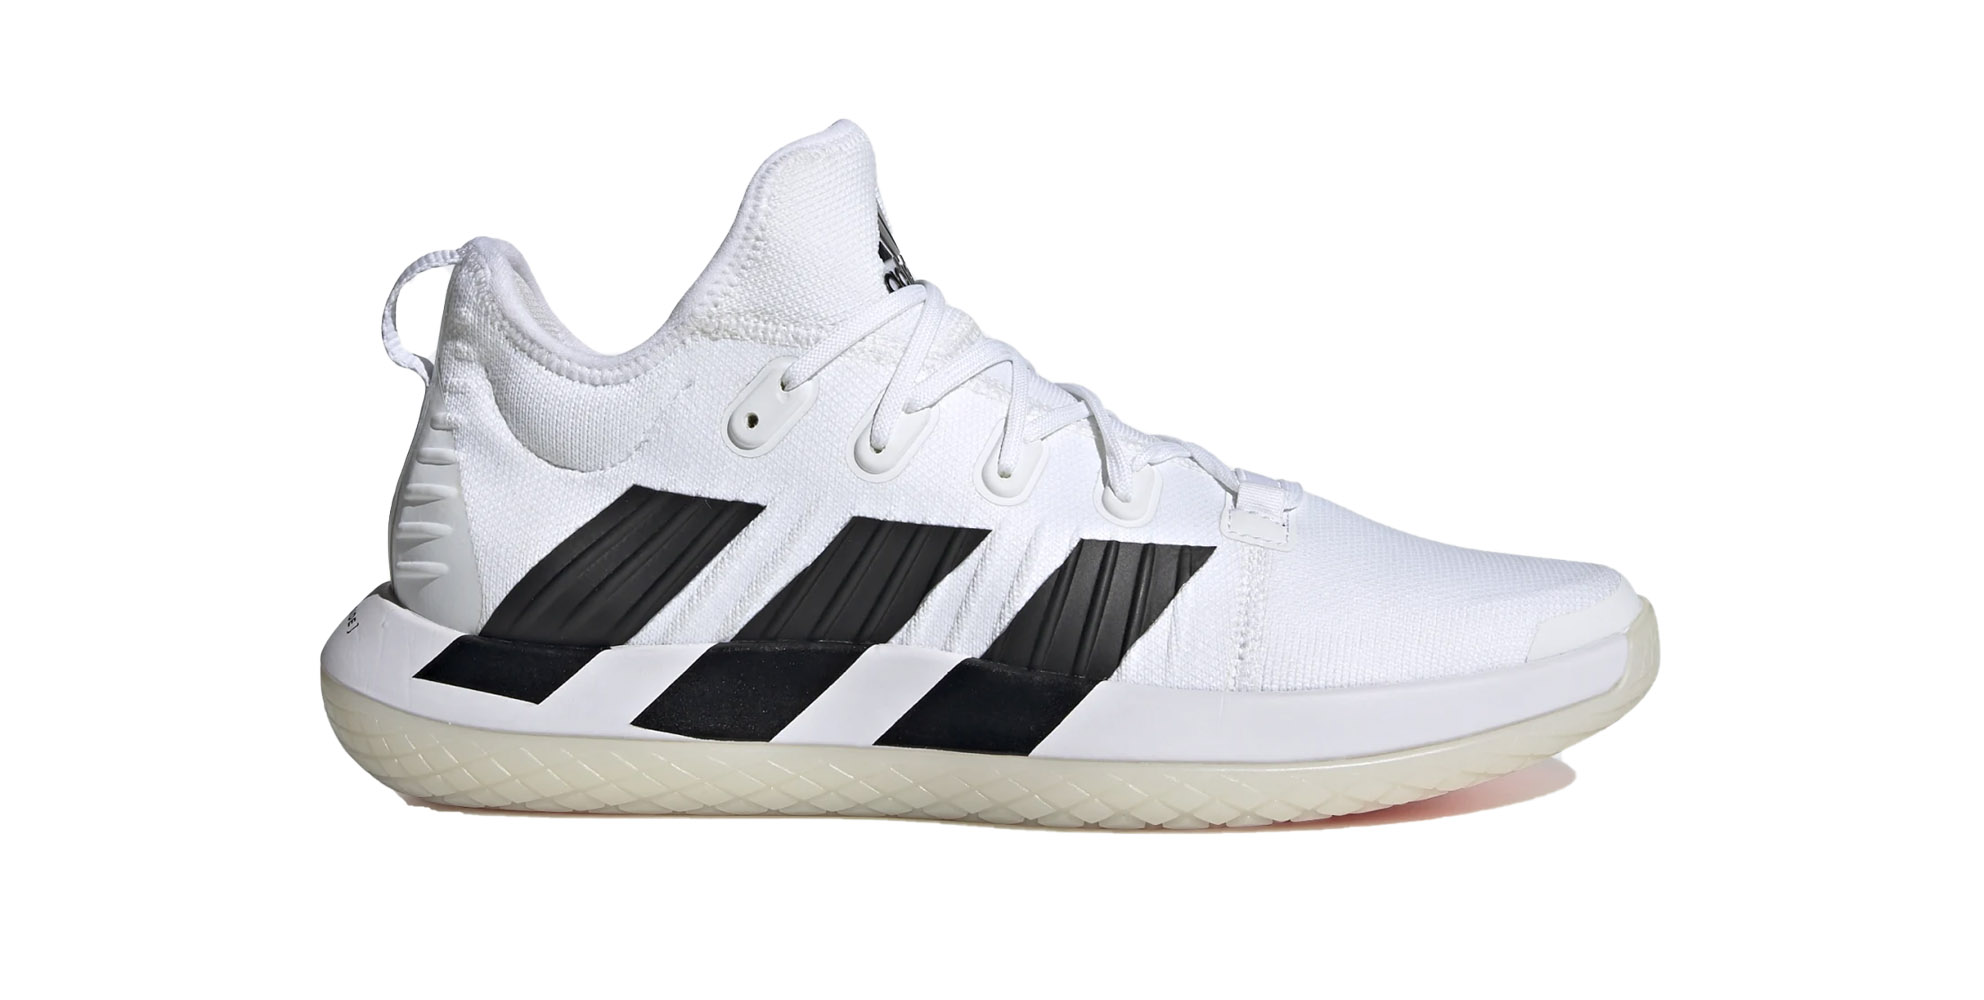 The best squash shoes in 2021 – Squash Gear Reviews